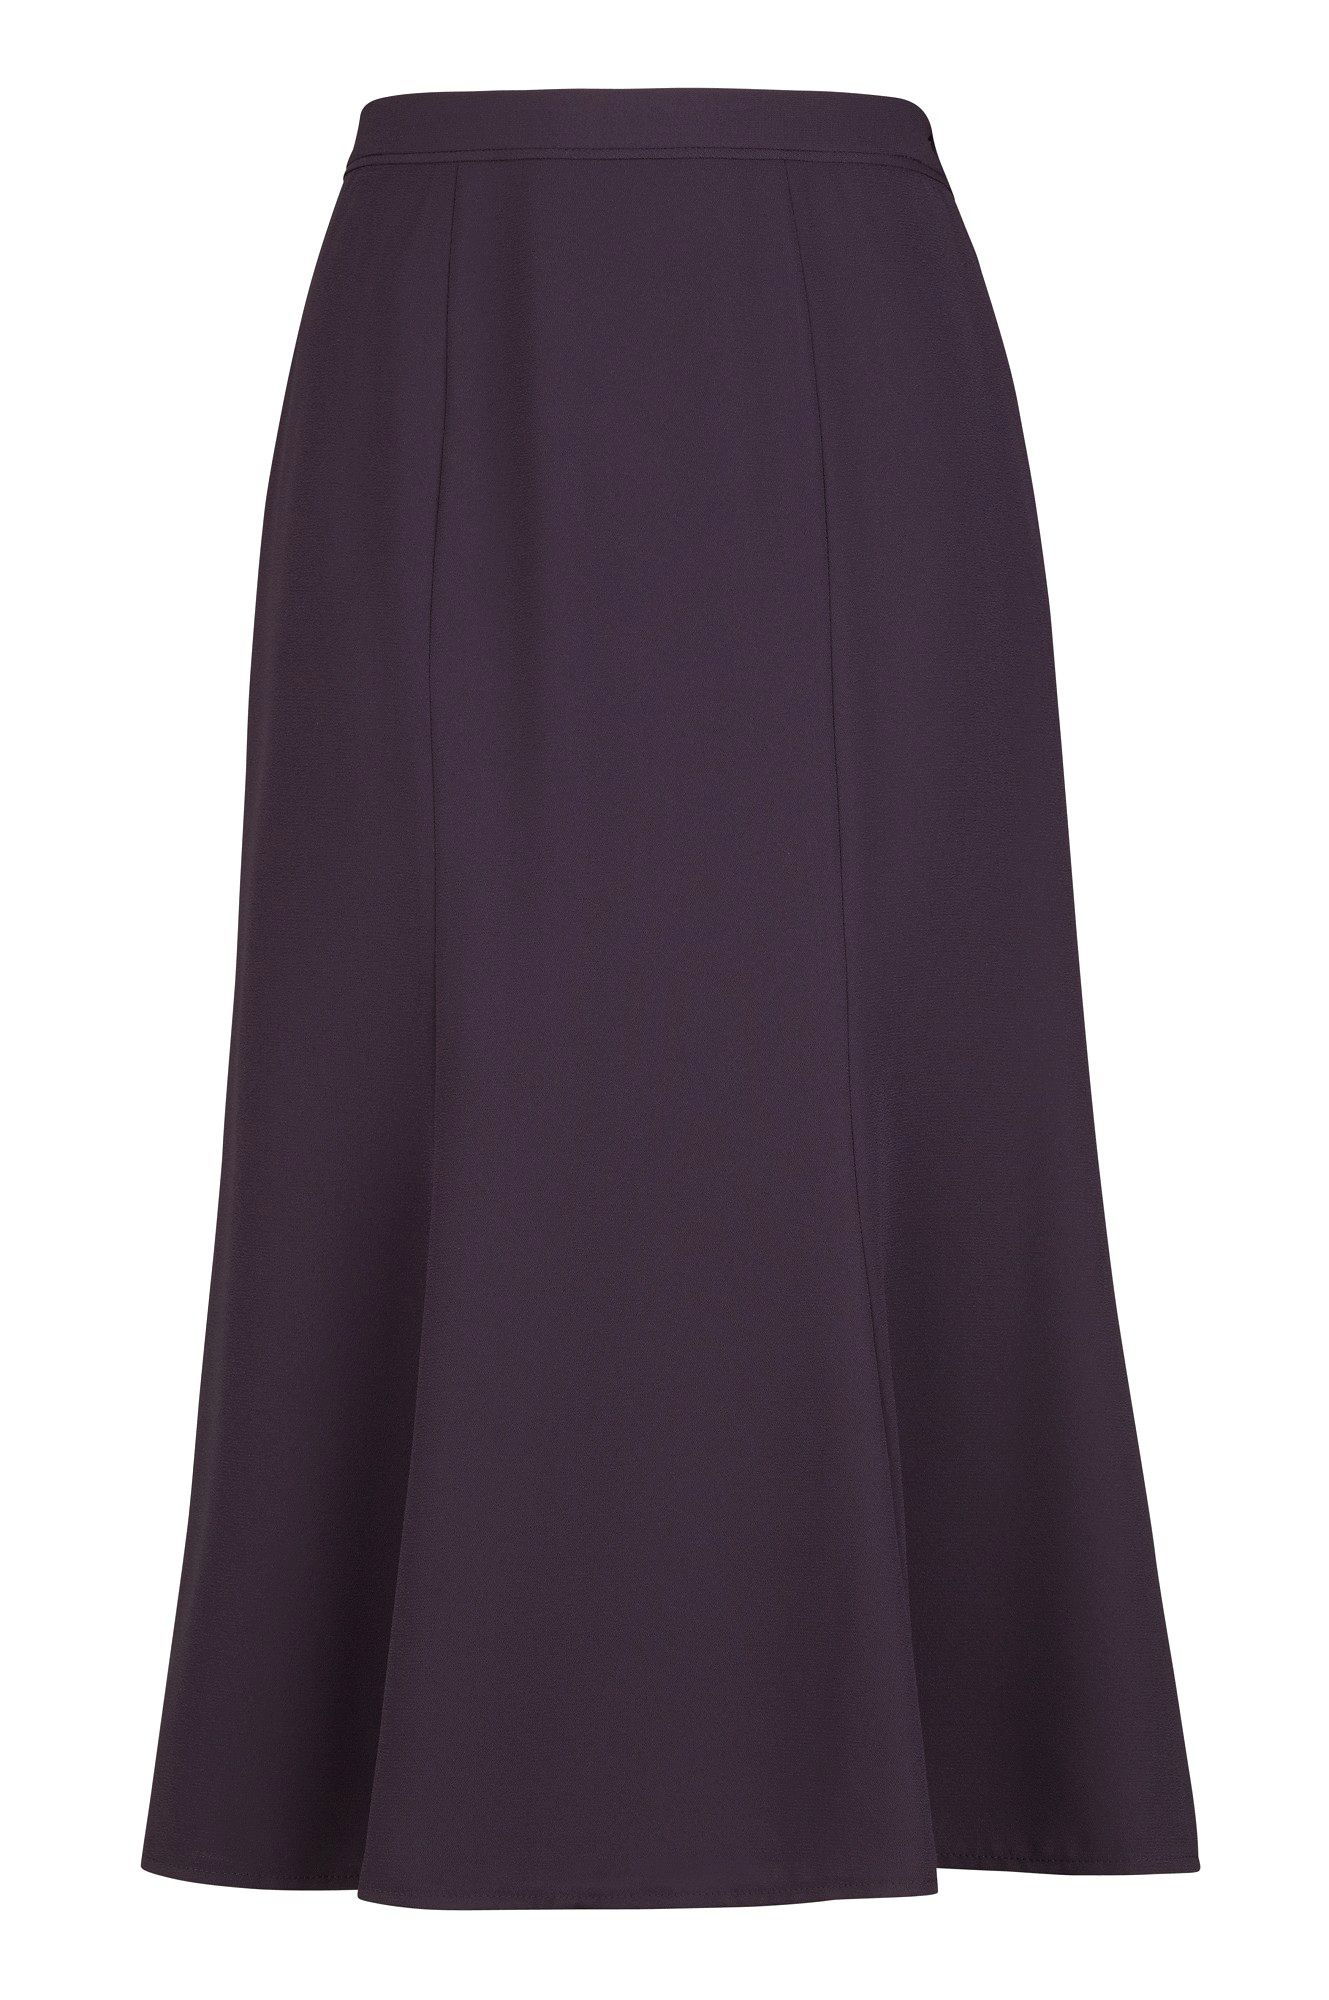 Fit & flare fine crepe skirt